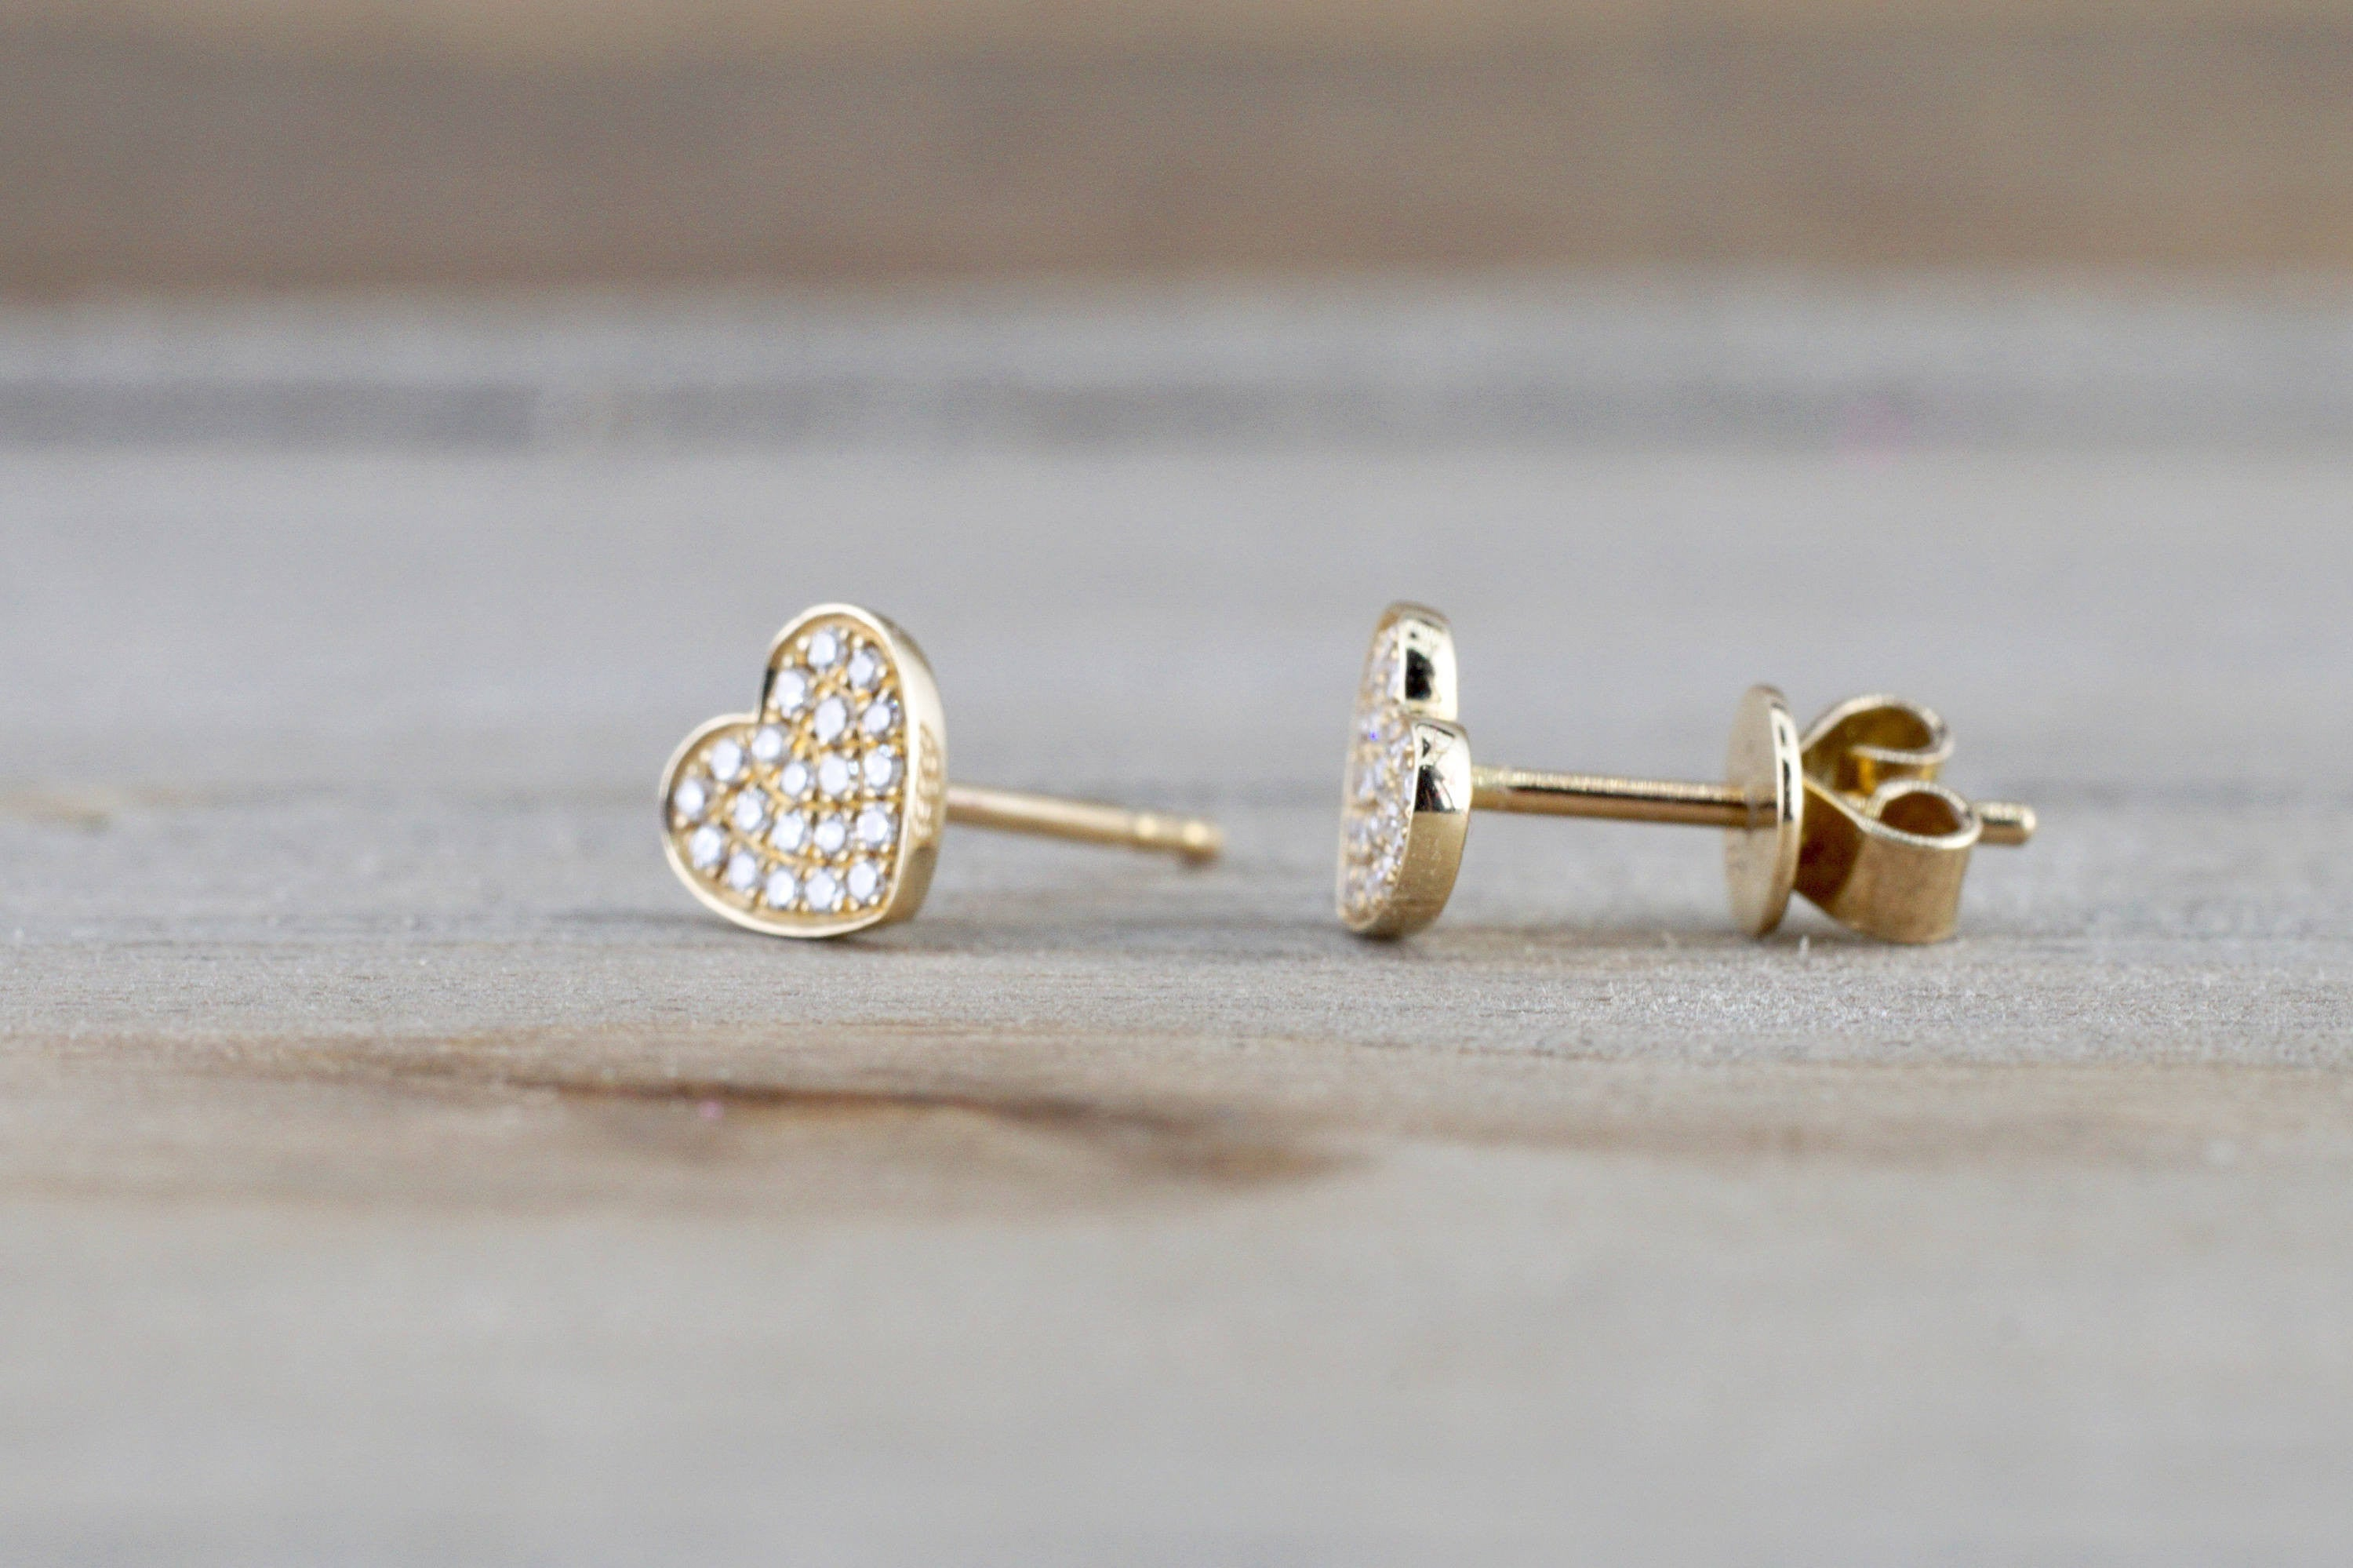 14k Yellow Gold Disk Design Heart Diamond Earrings Stud Post Studs Round Micro Pave Flat